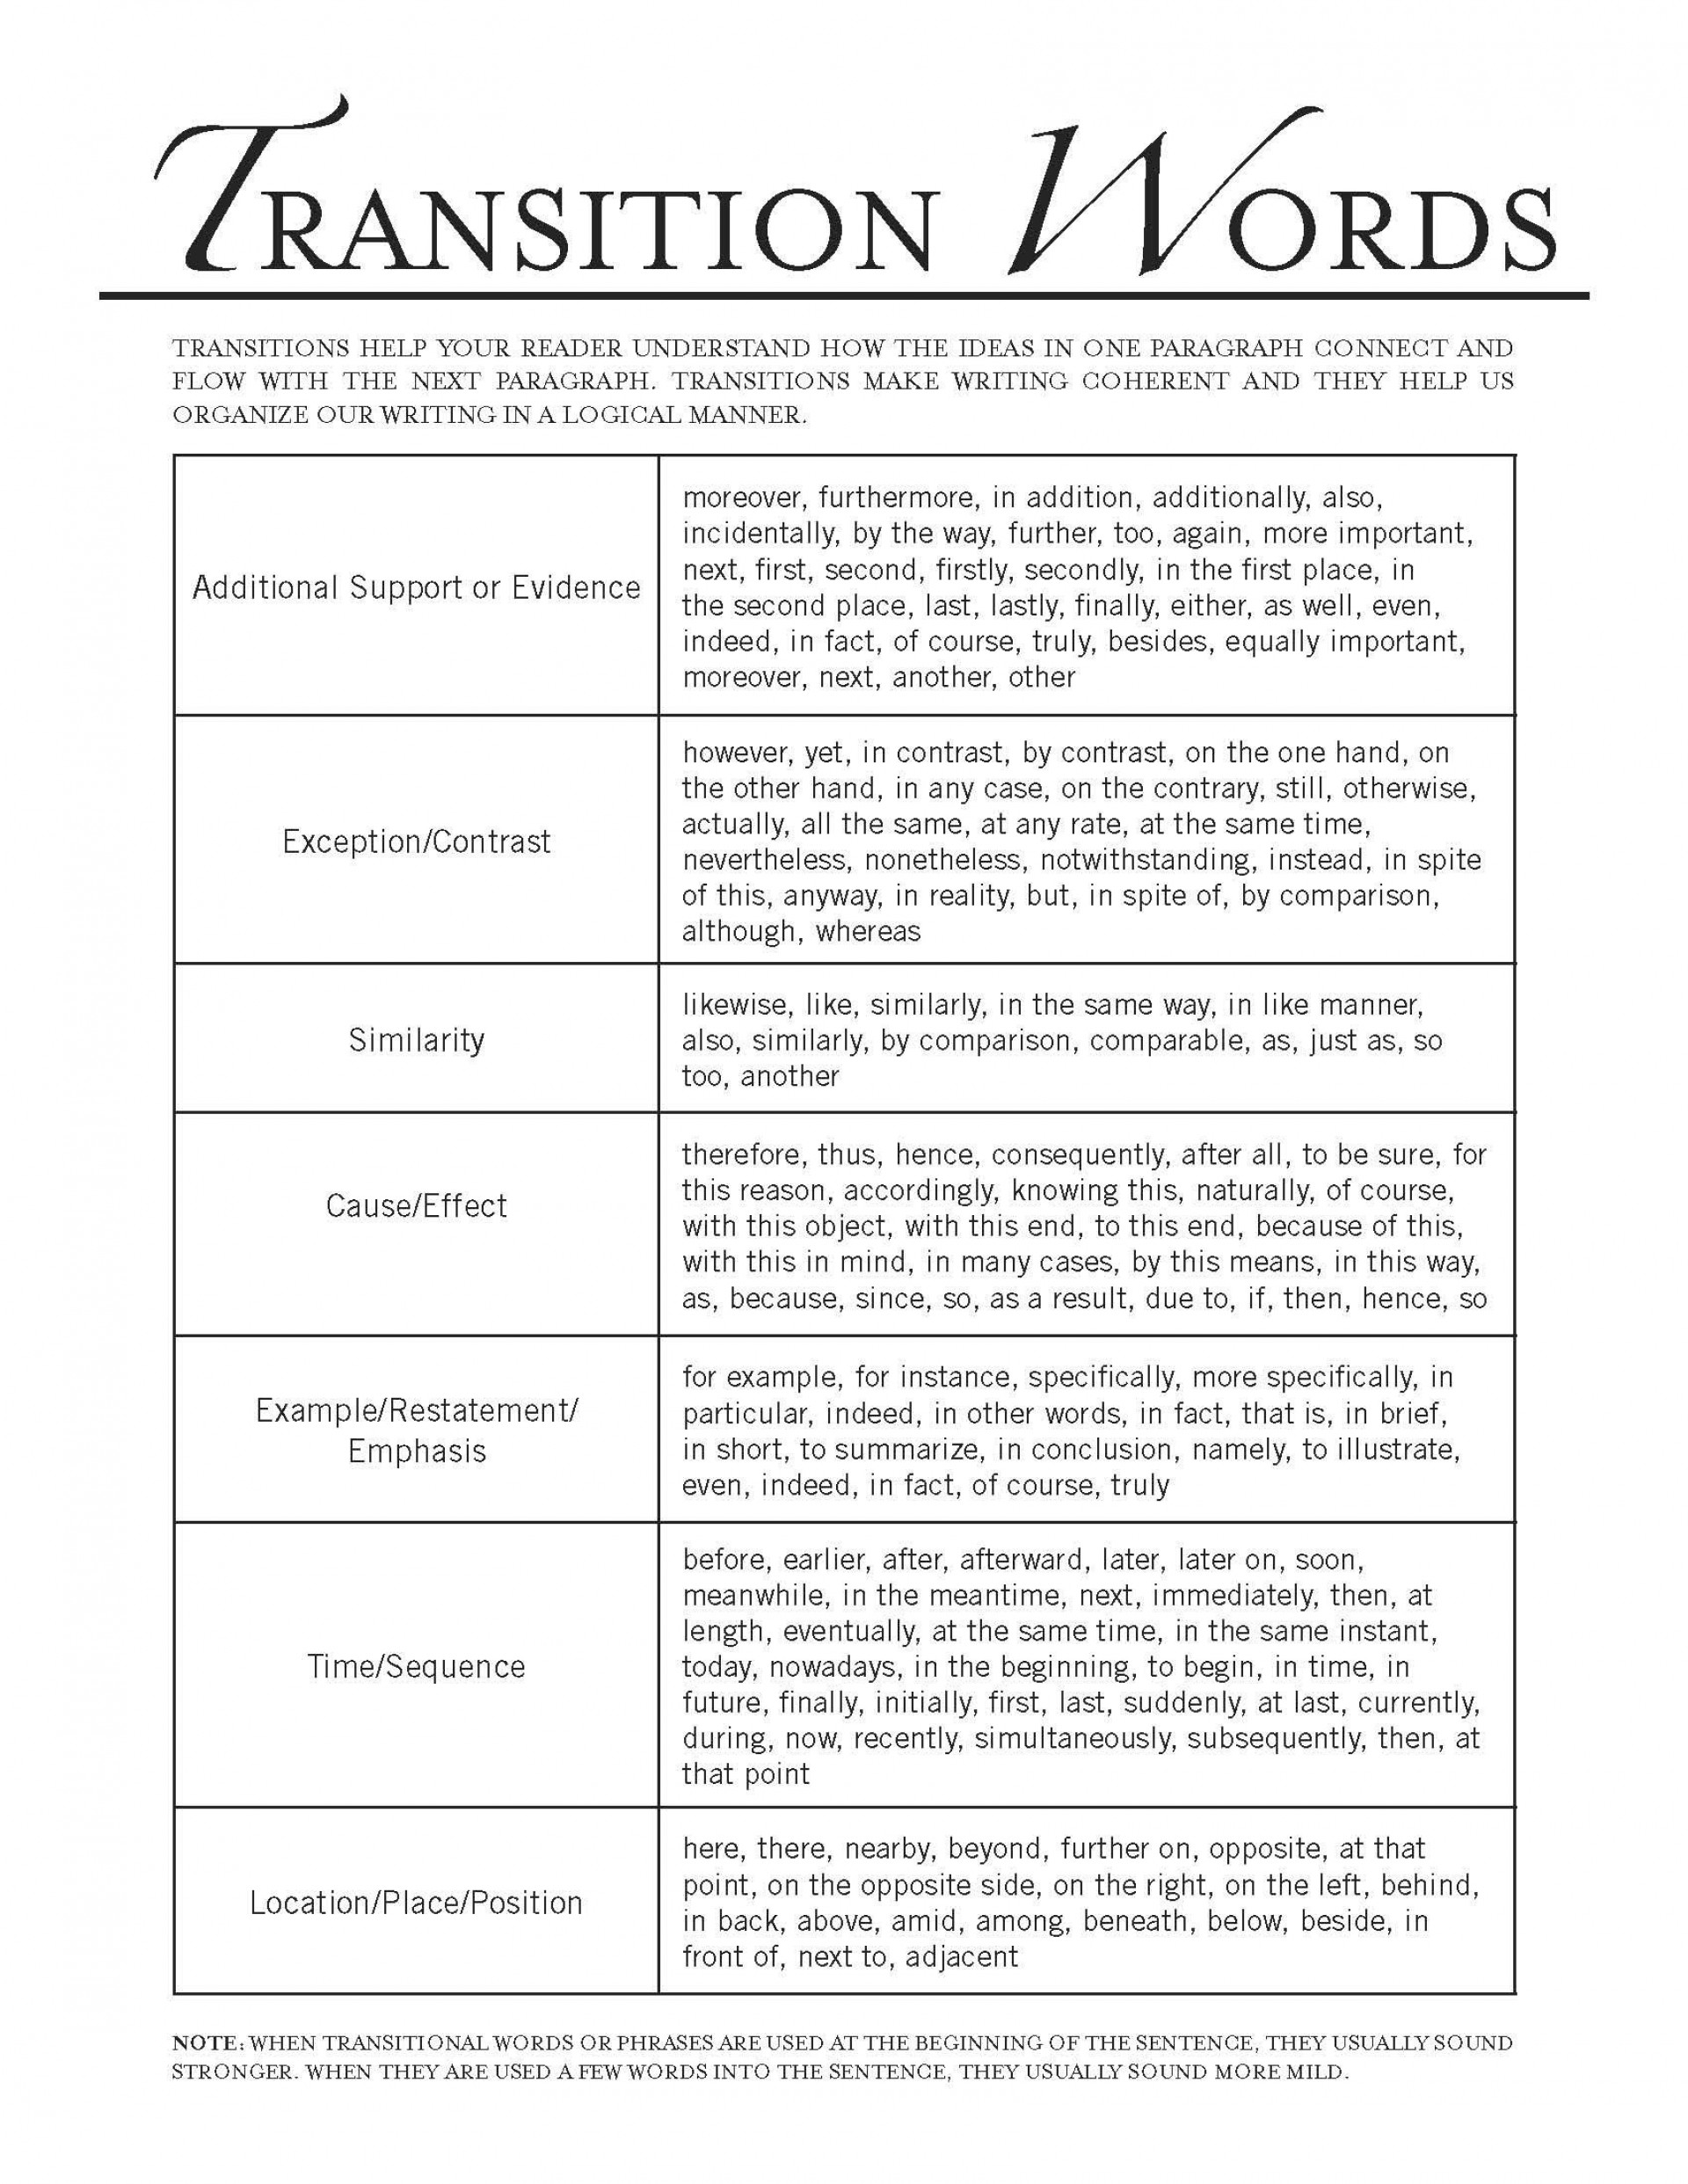 001 Transition Words And Phrases For Essays Essay Amazing Opinion Writing Narrative 5th Grade Expository 1920